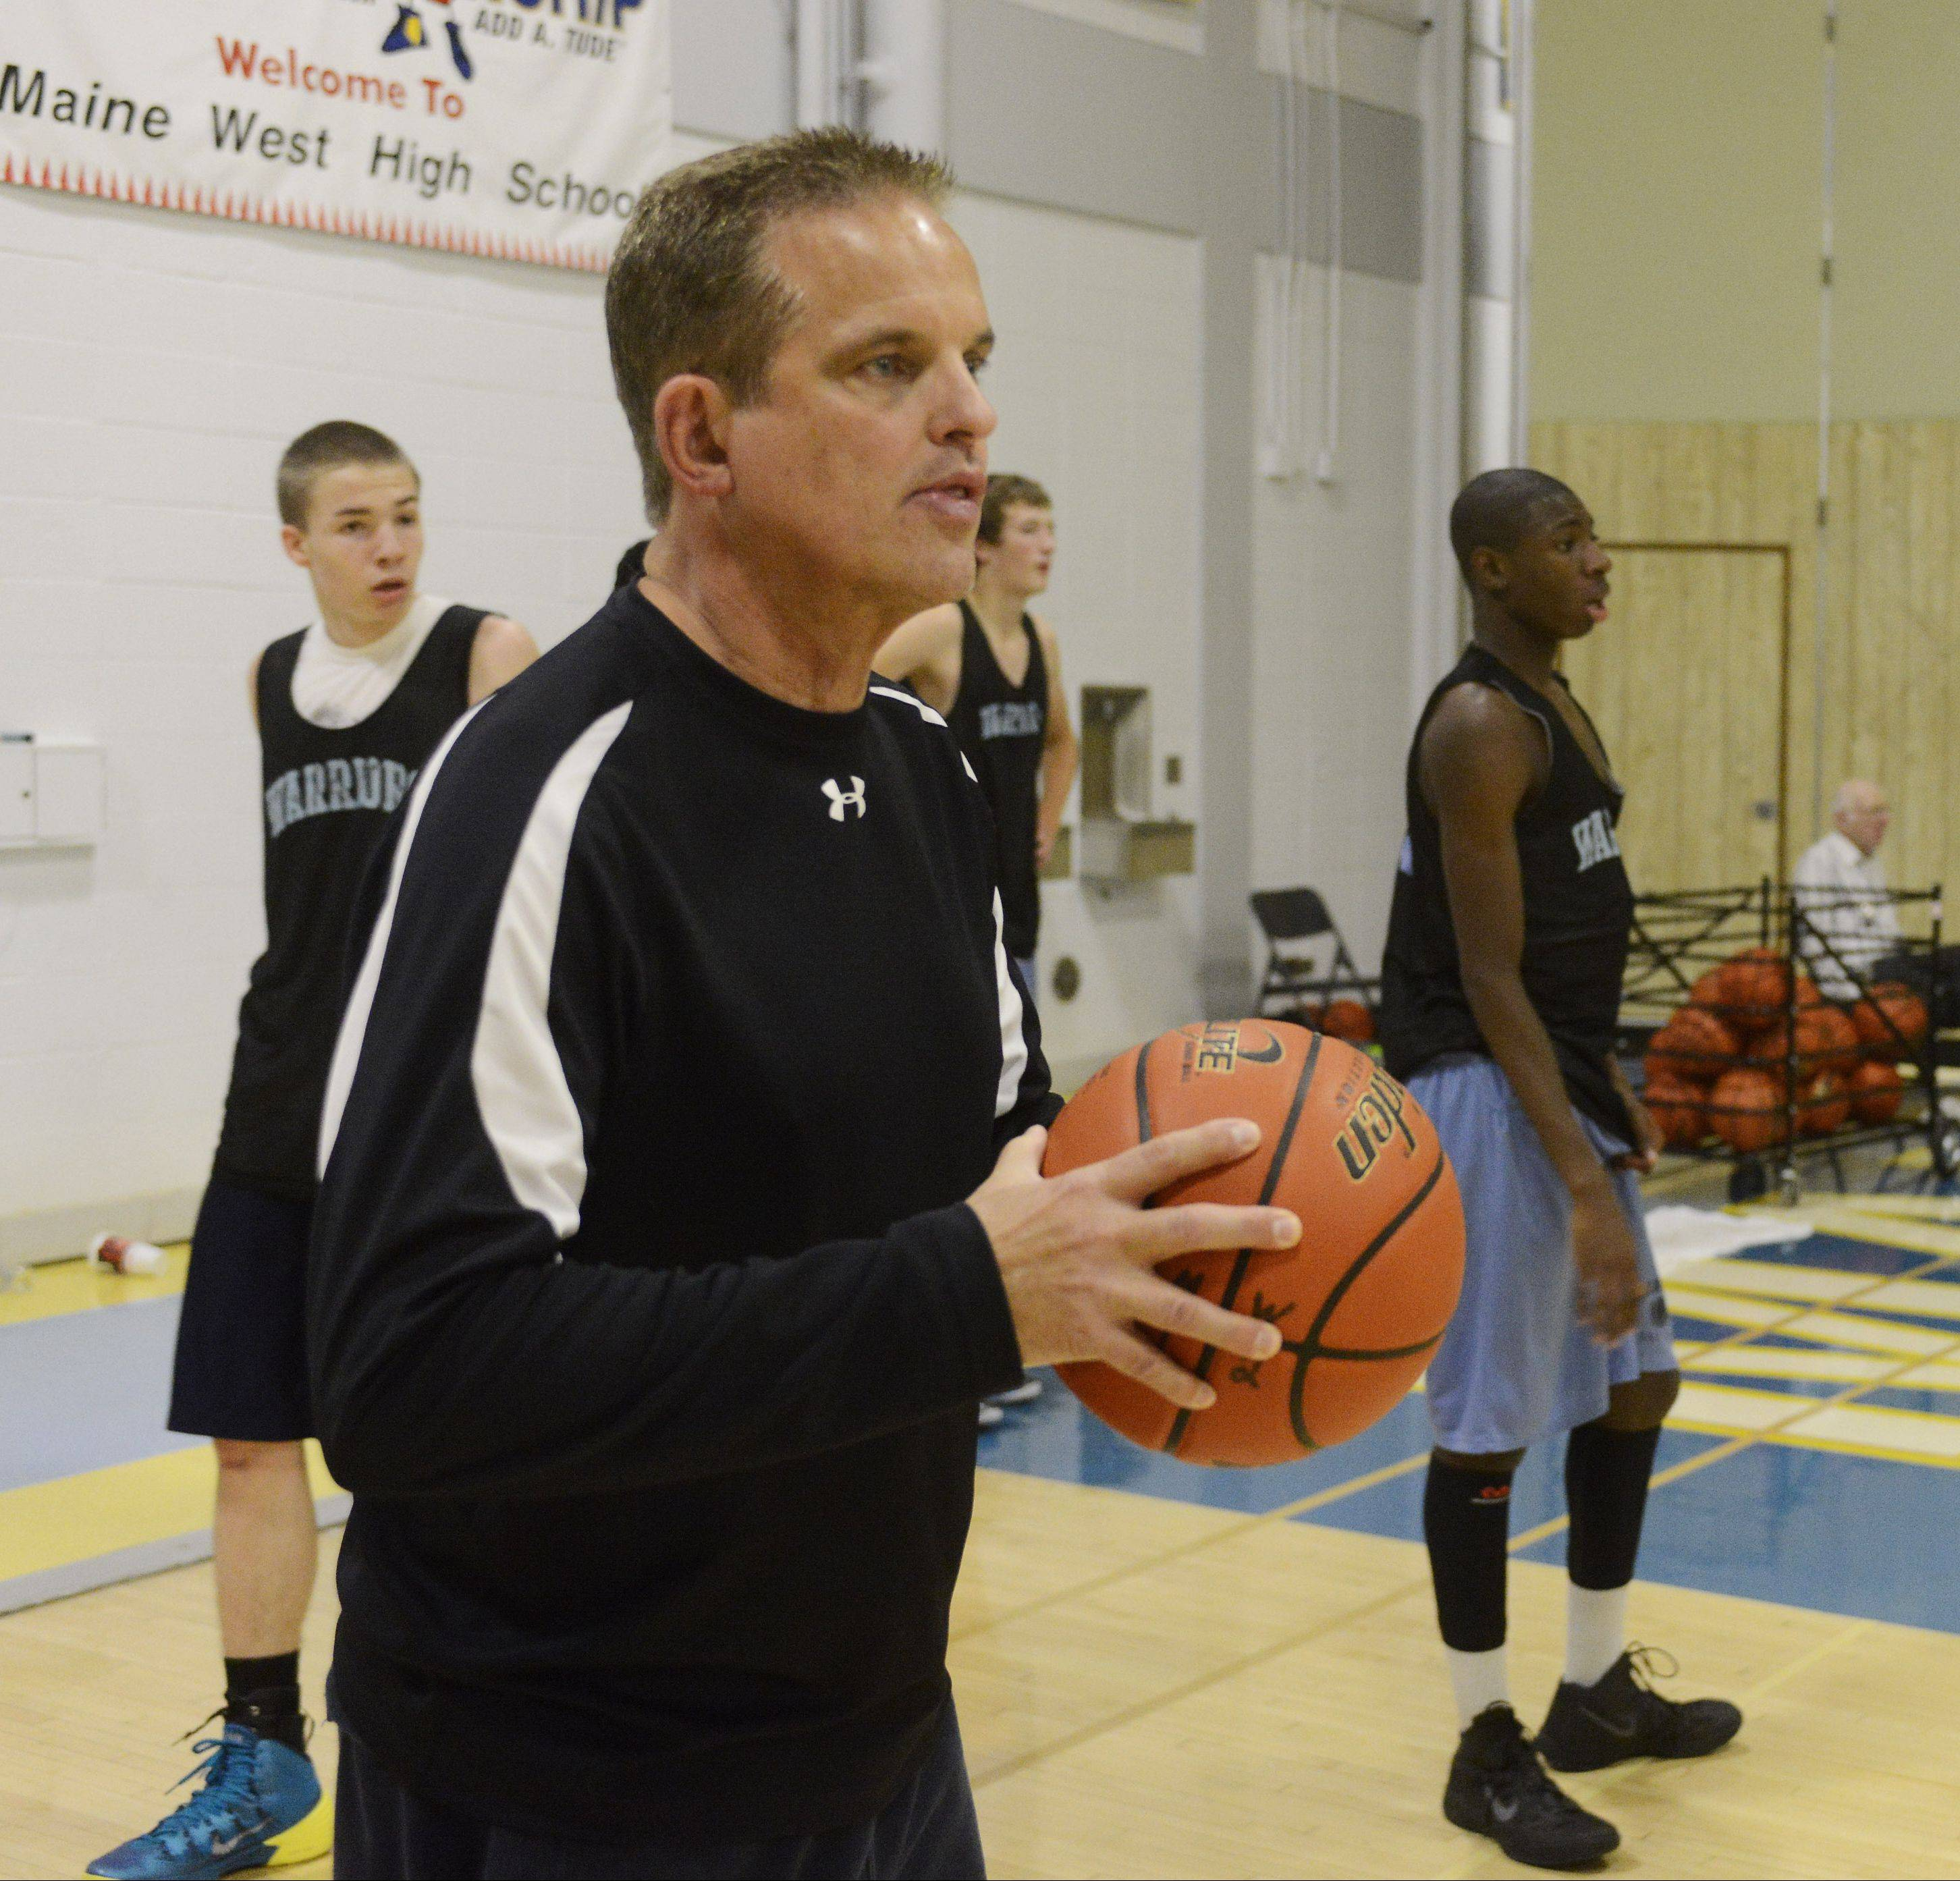 John Bongiorno is beginning his first year of coaching at Maine West, but he brings a deep background to the task at hand.